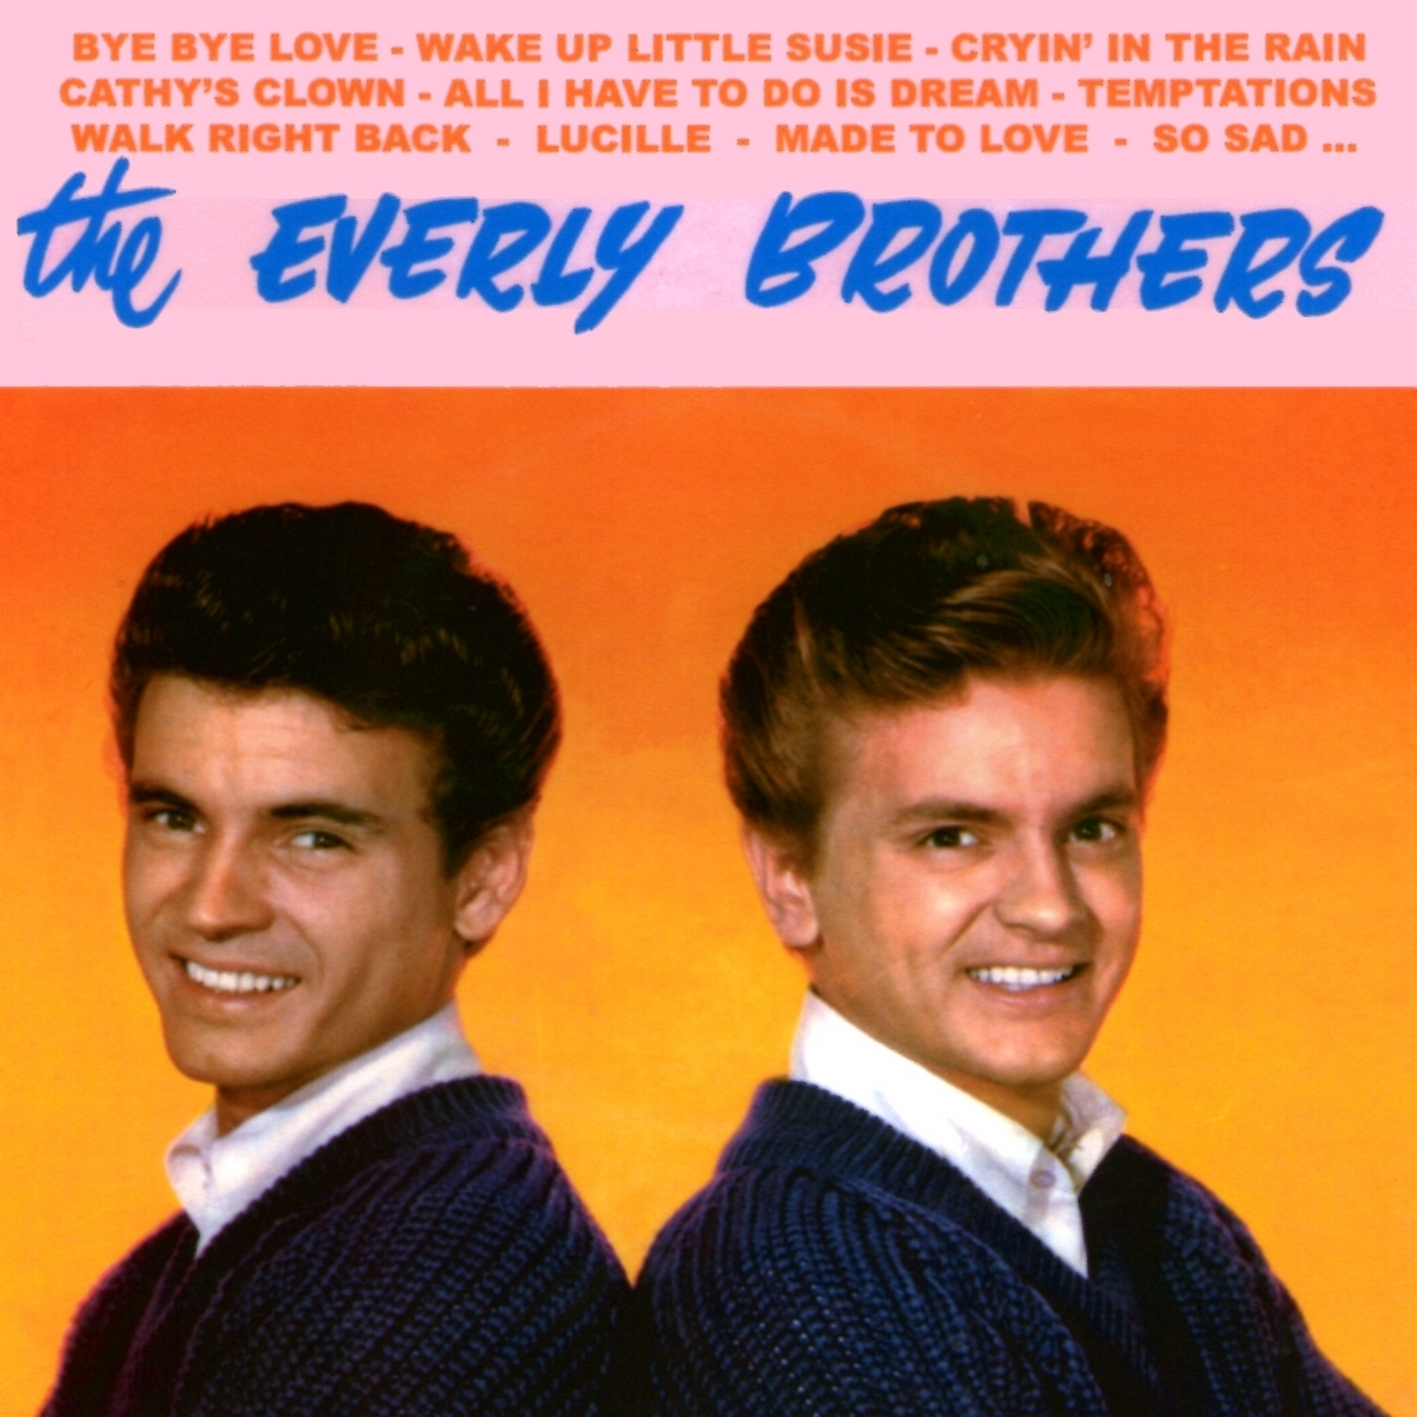 THE EVERLY BROTHERS - 2 CD